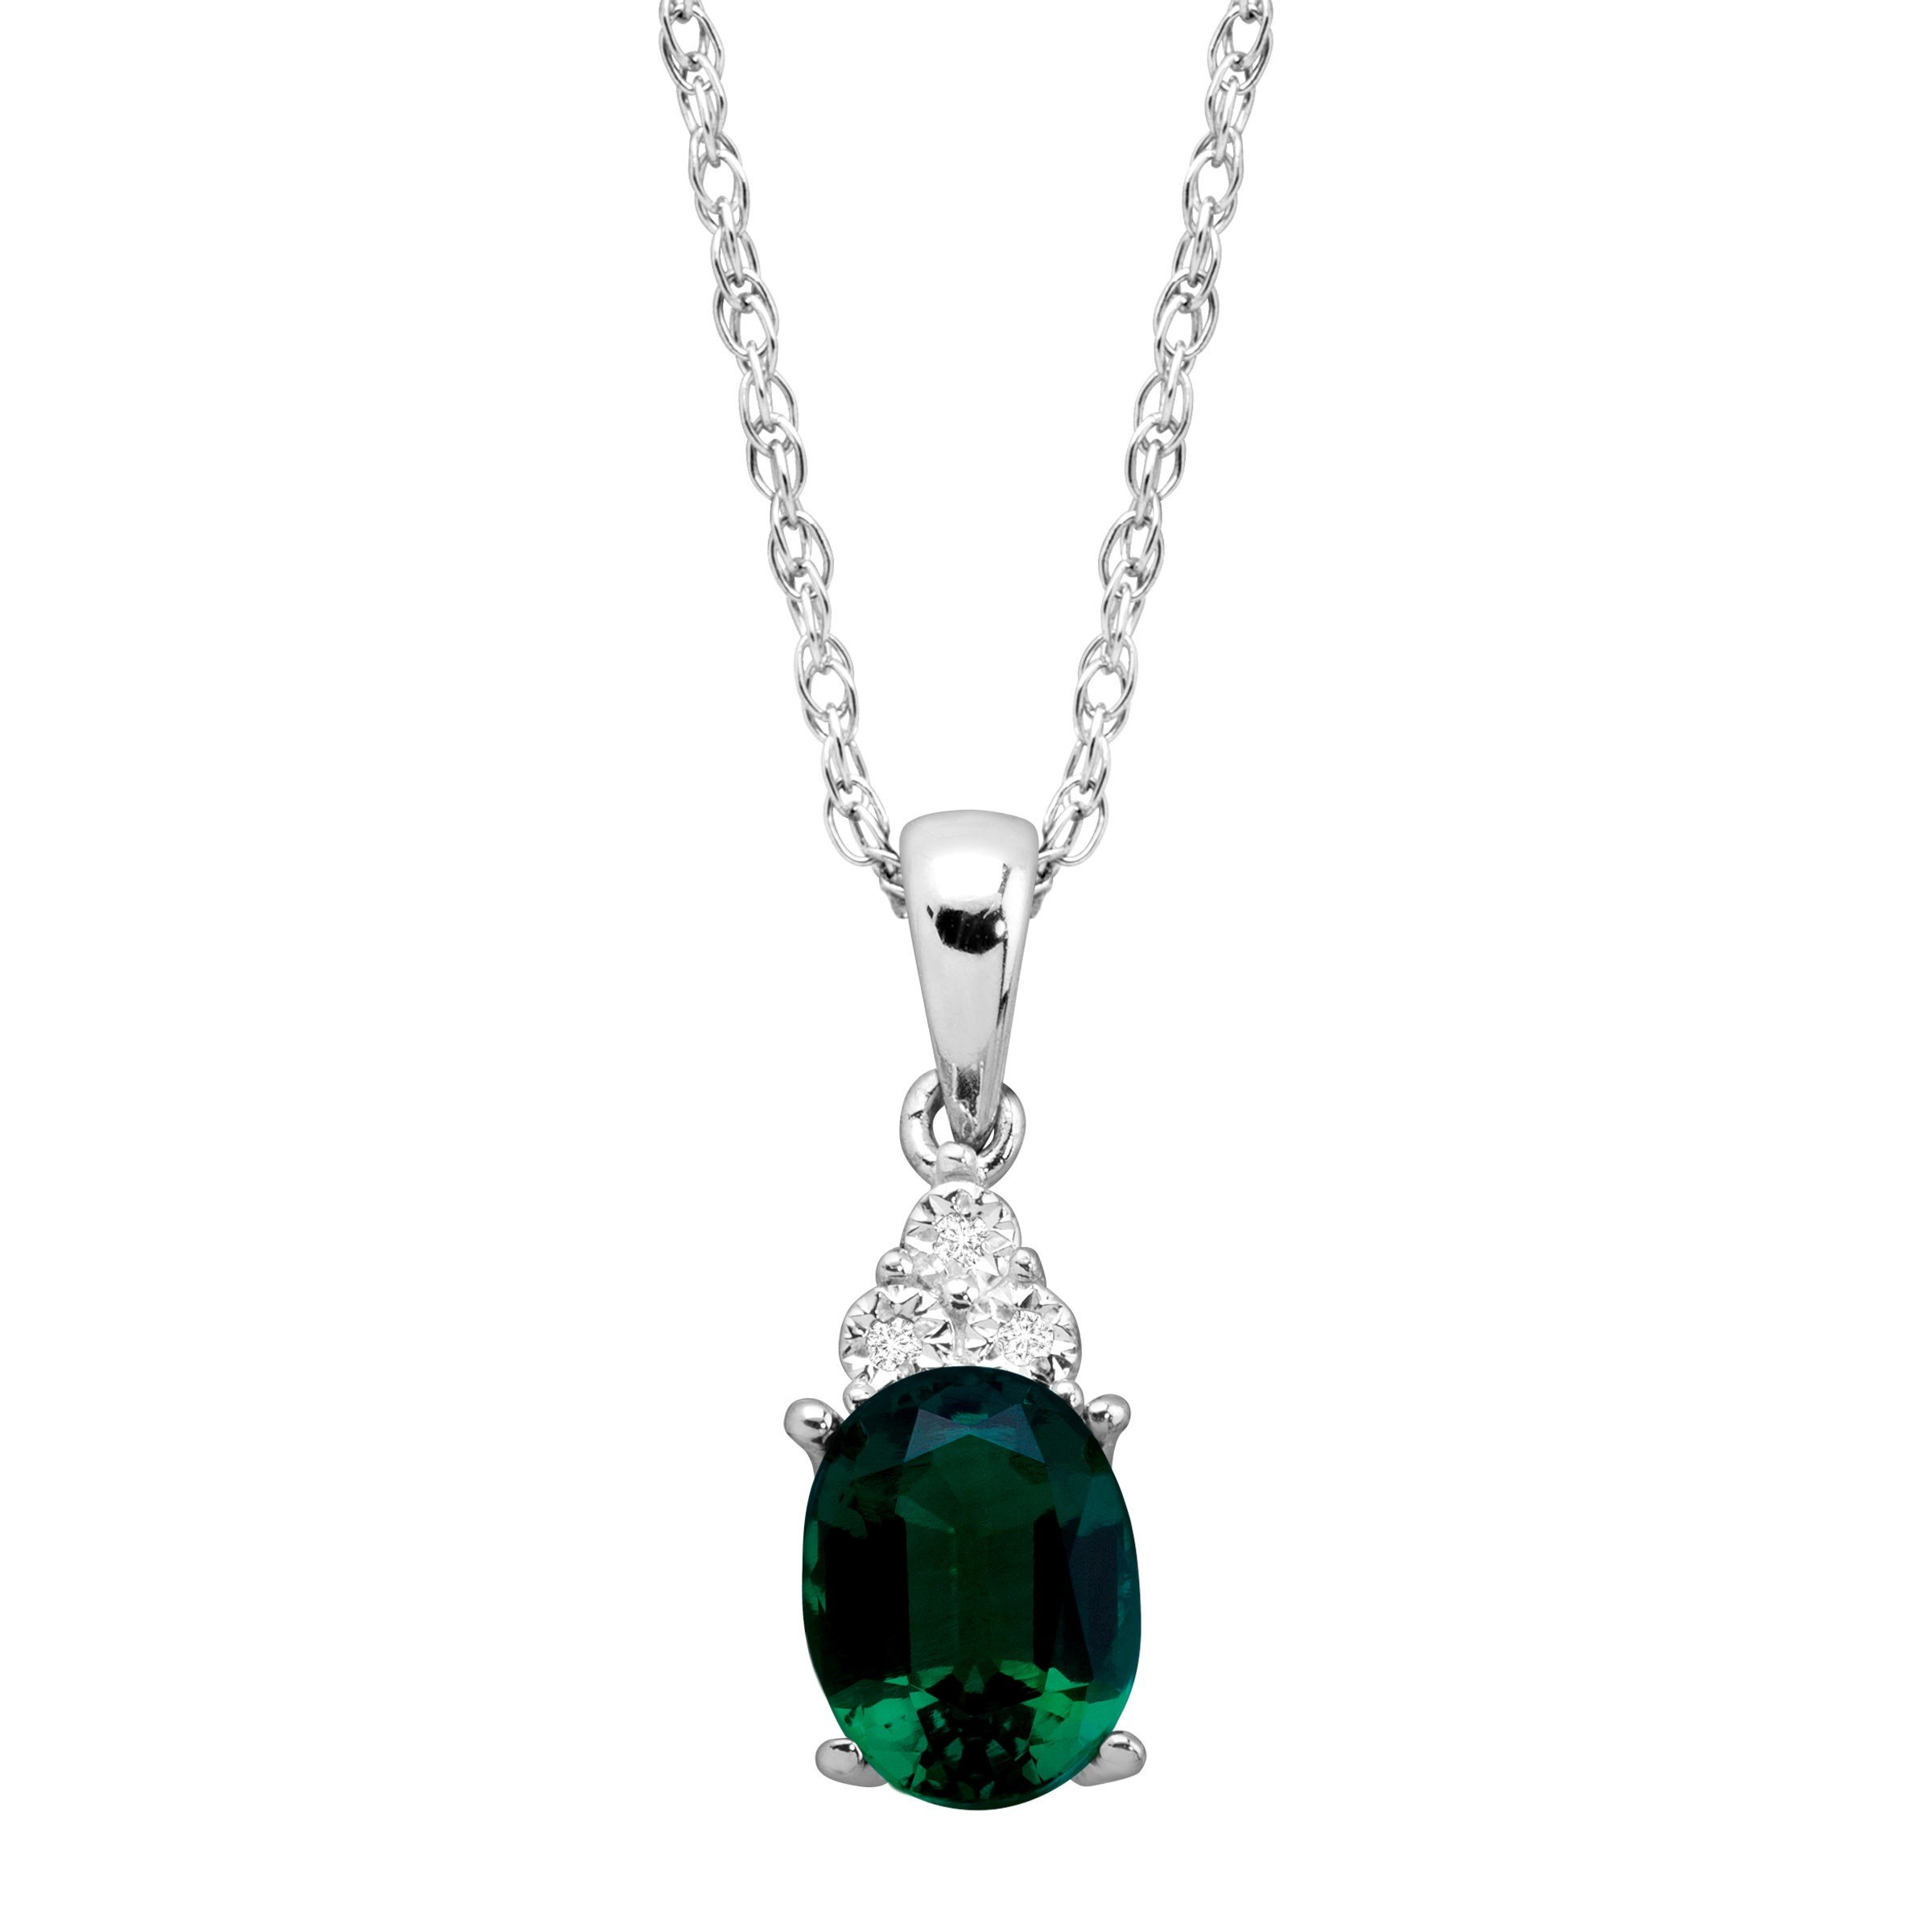 1 1/6 ct Created Oval-Cut Emerald Pendant with Diamonds in Sterling Silver